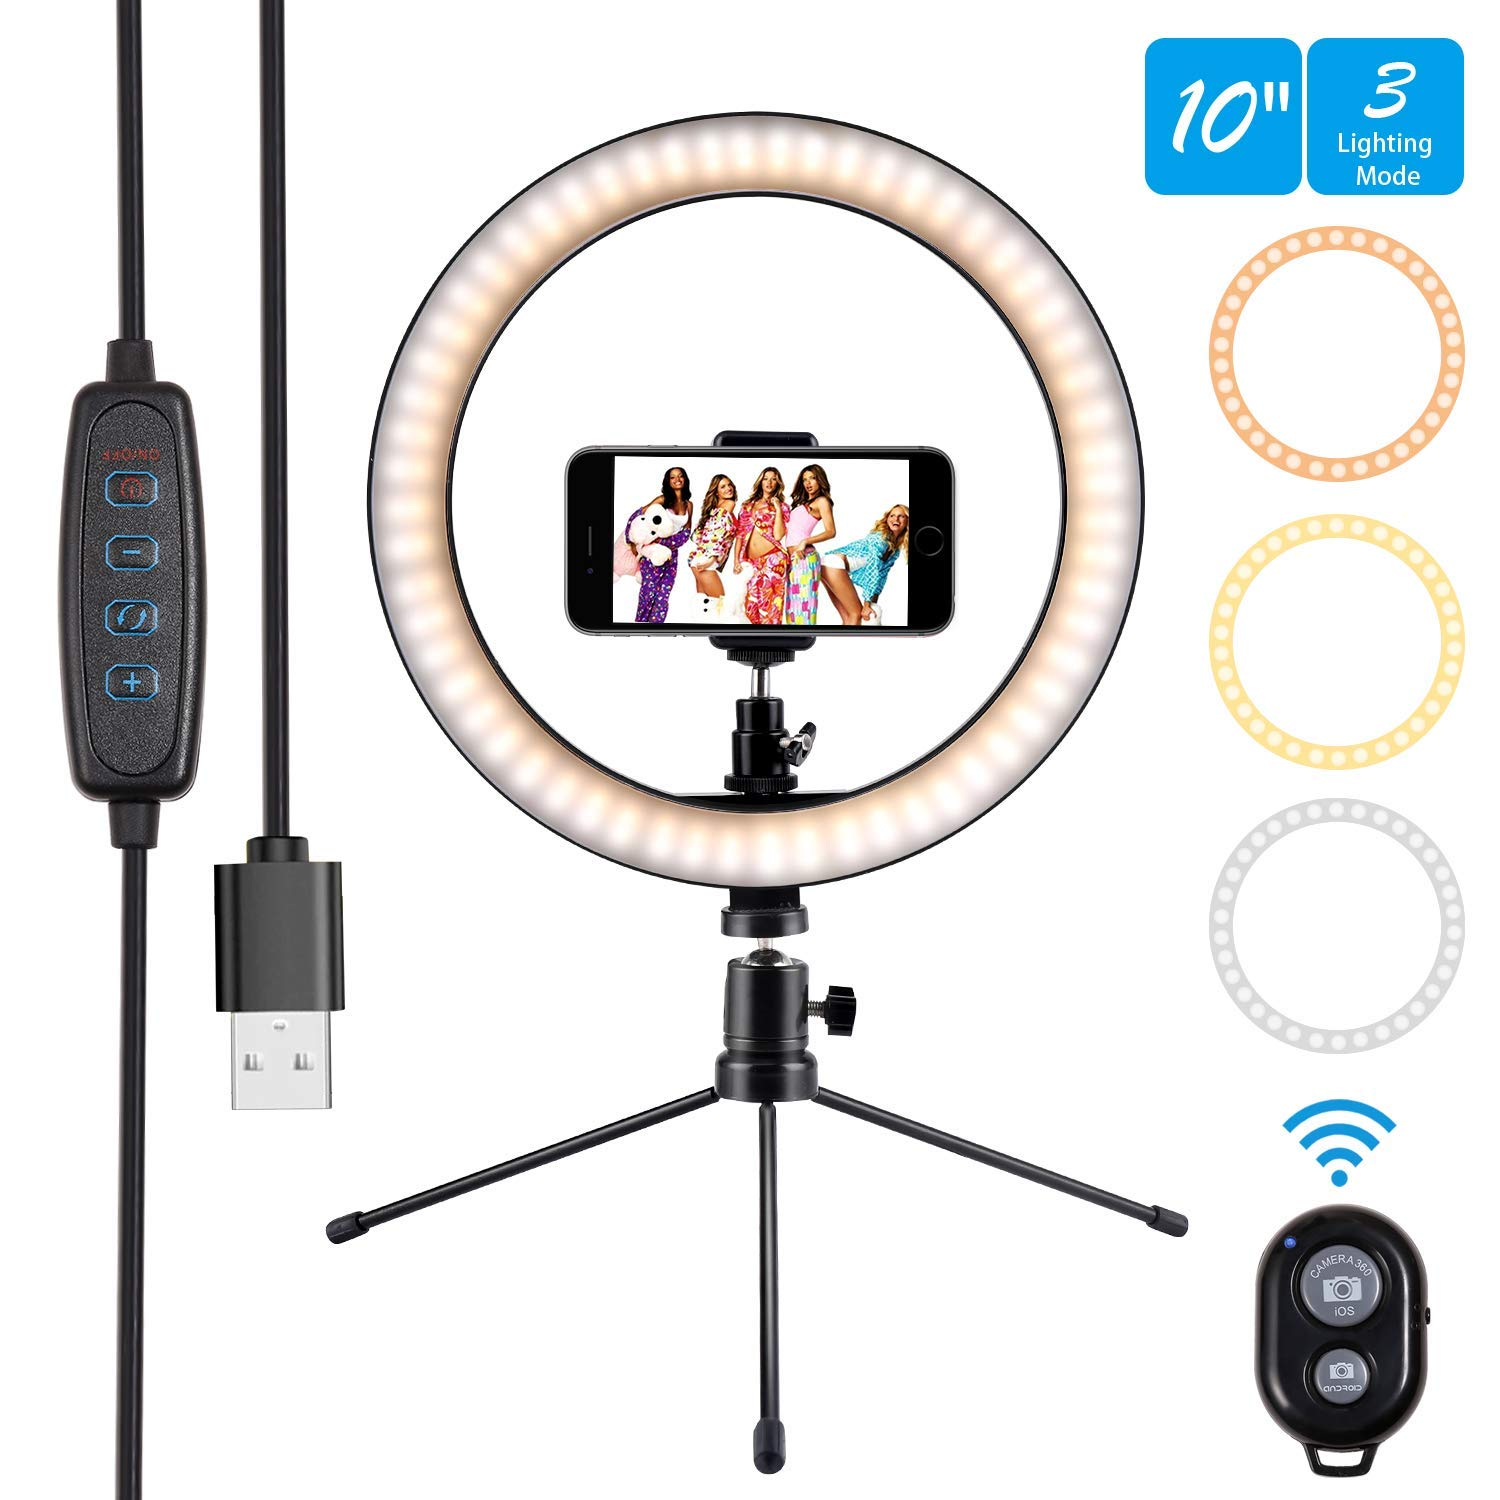 Ring Light 10'' Selfie Ring Light with Remote Control 3 Light Modes & 10 Brightness Level and 120 Bulbs Dimmable Desktop Ringlight for YouTube Video/Live Stream/Makeup/Photography for iPhone Android by KeShi